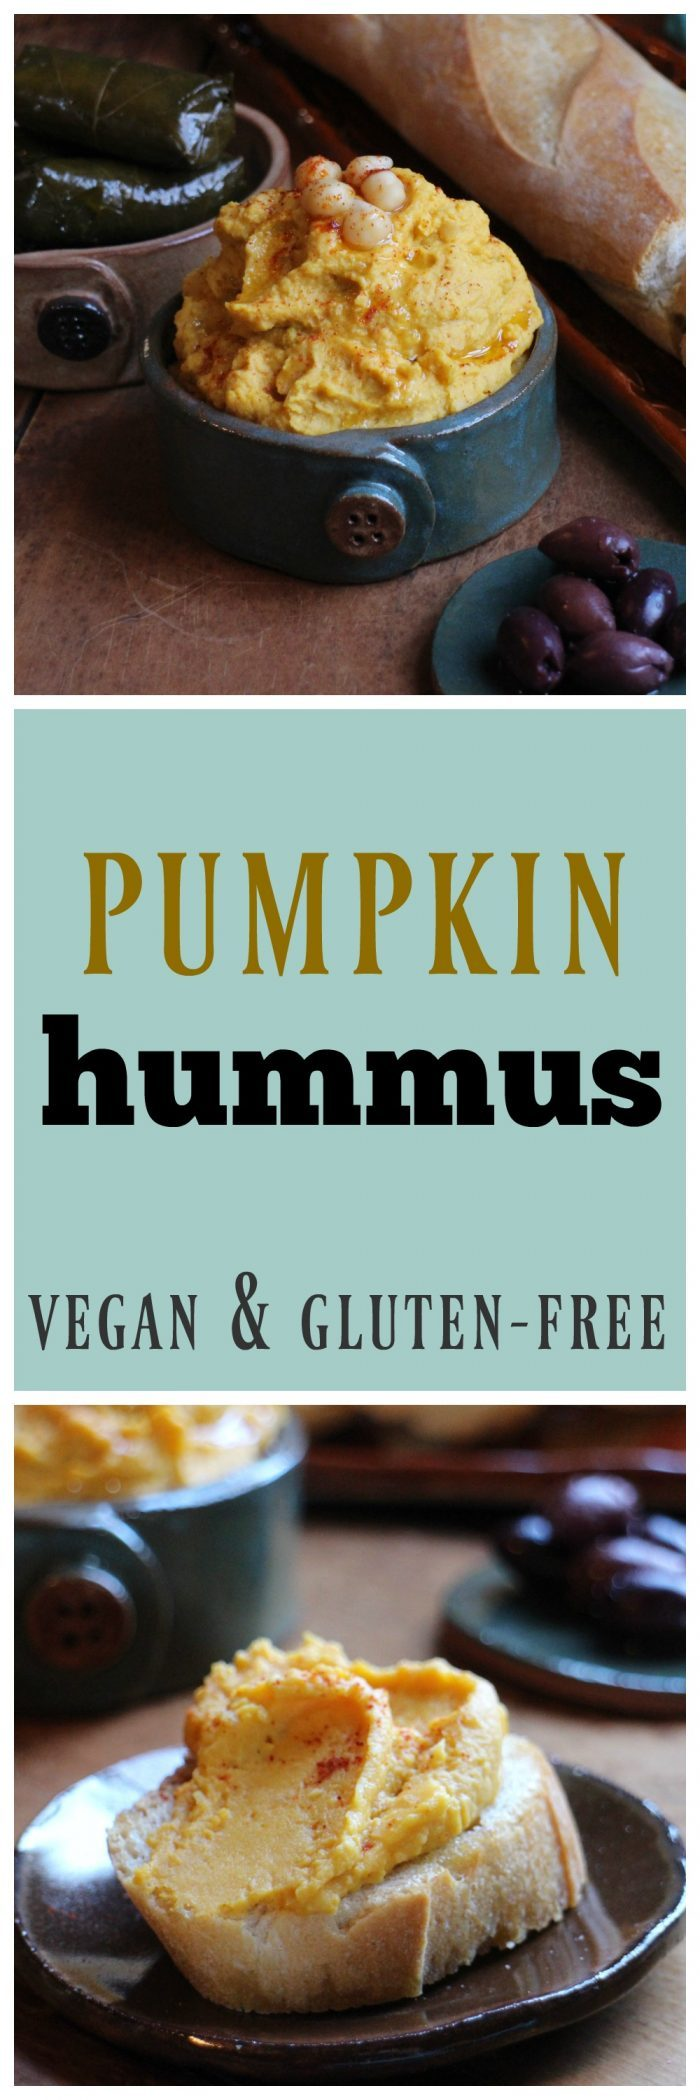 Pumpkin hummus: A terrific alternative to your regular hummus. Great for fall! | cadryskitchen.com